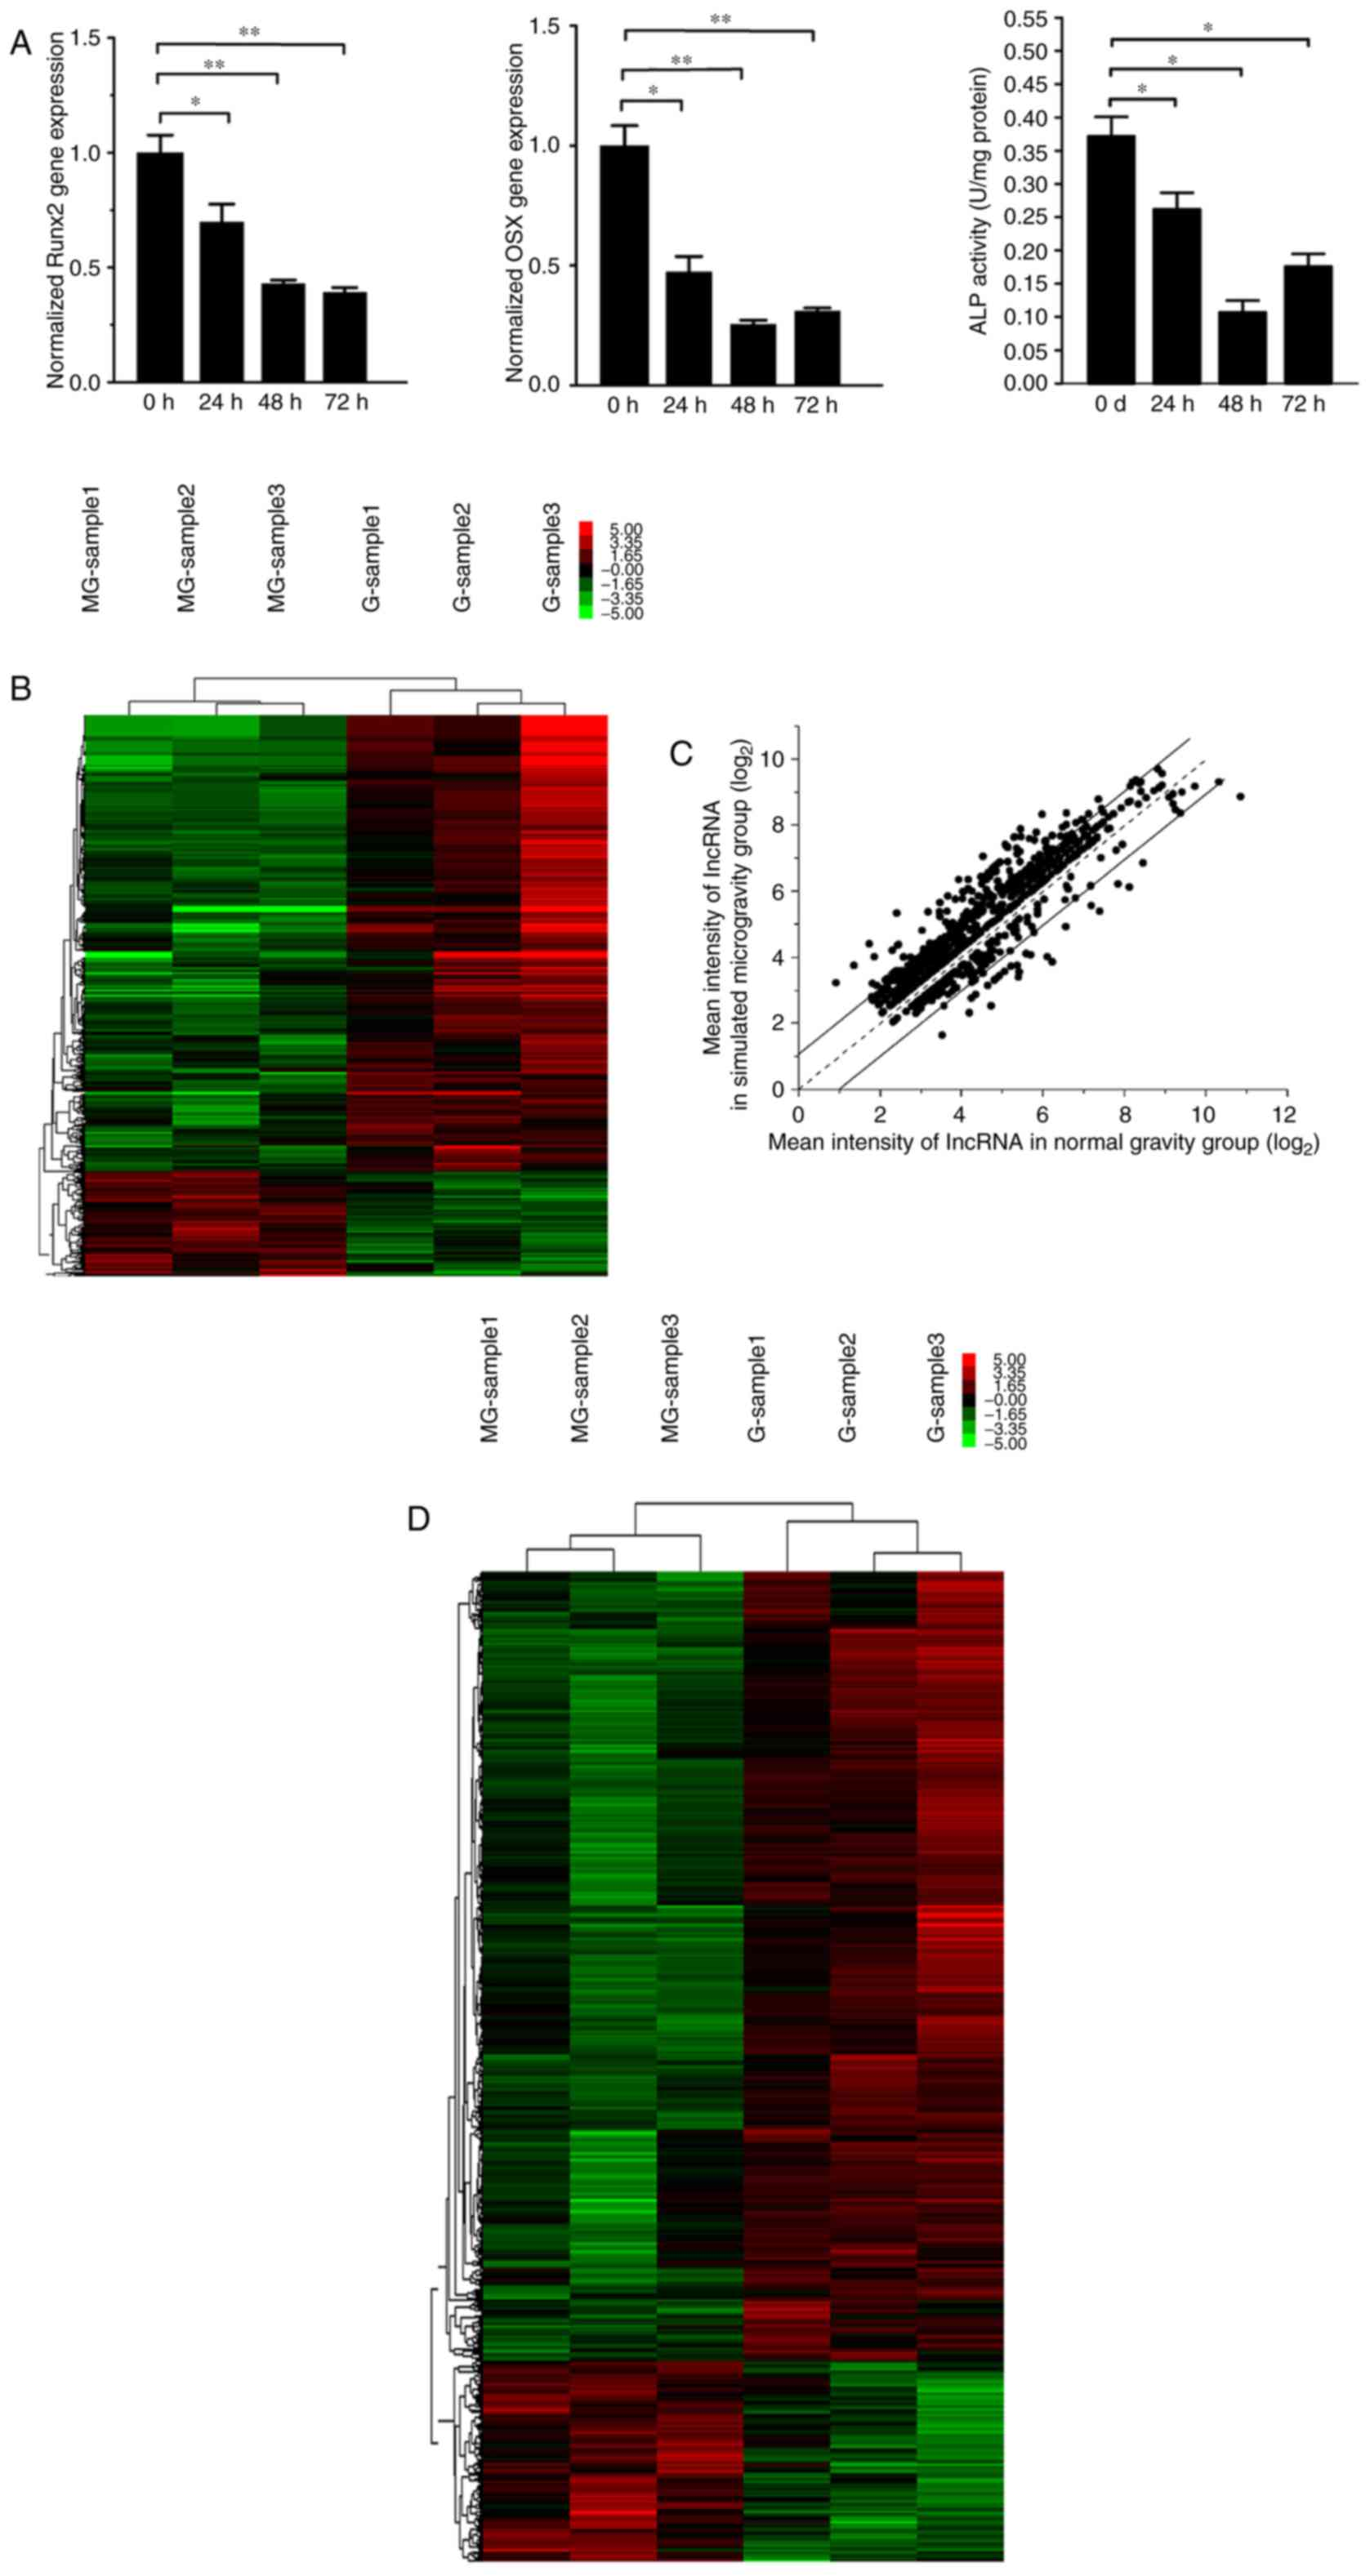 Genomewide Analysis And Prediction Of Functional Long Noncoding Transcribed Image Text 6 Use Nodal To Find The Short Circuit A Osteogenic Differentiation Was Assessed By Reverse Transcription Quantitative Polymerase Chain Reaction Osteoblast Marker Genes Activity